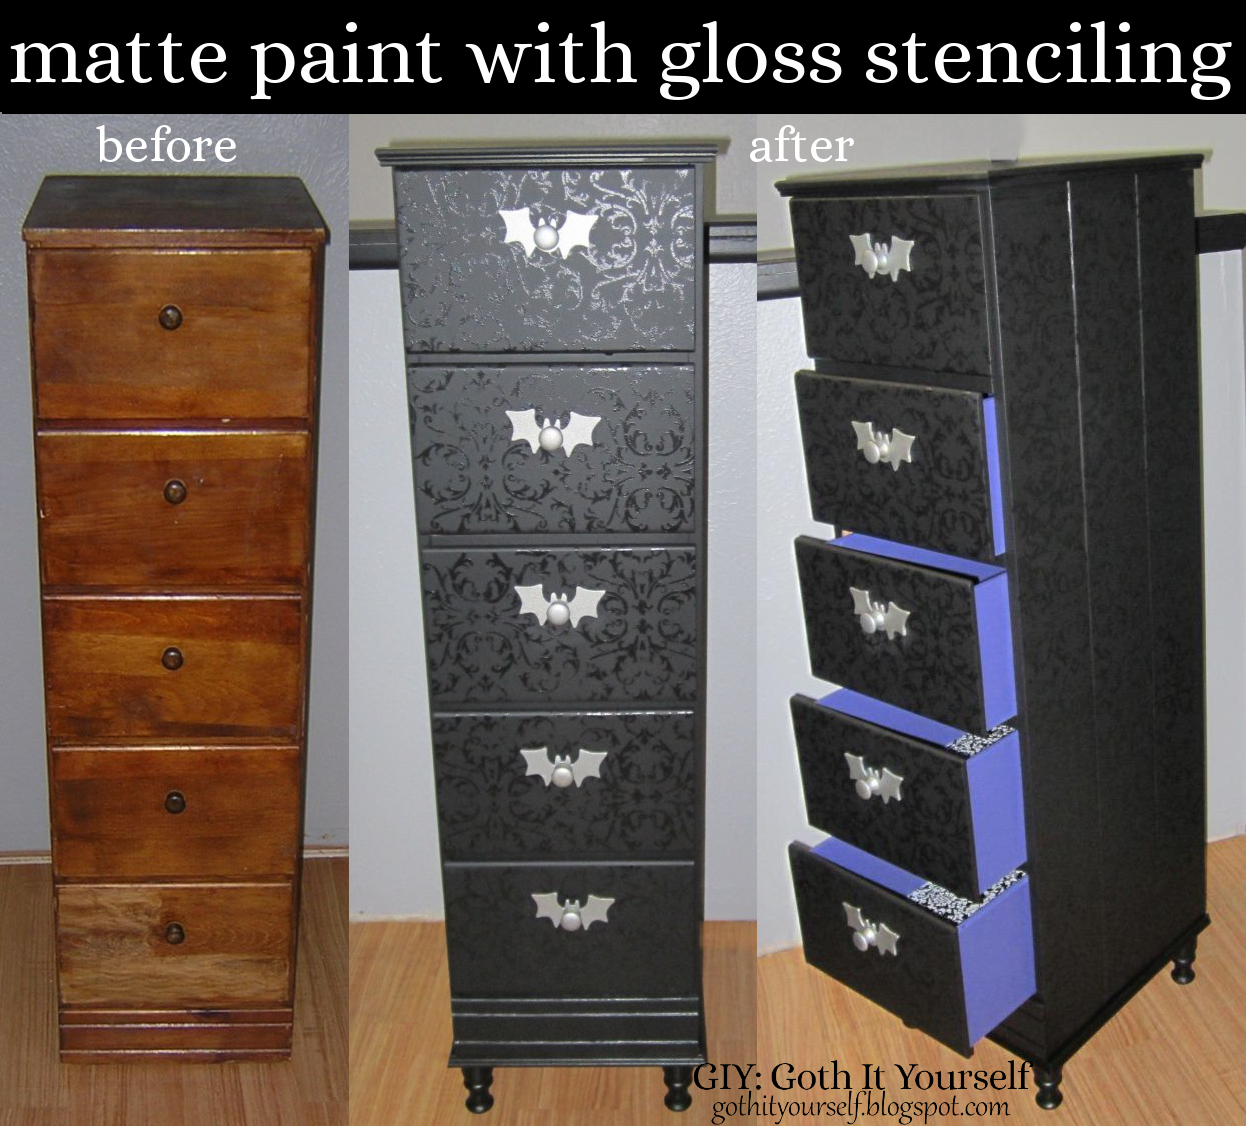 GIY Goth It Yourself BlackonBlack Chest Of Drawers - Black gloss chest of drawers